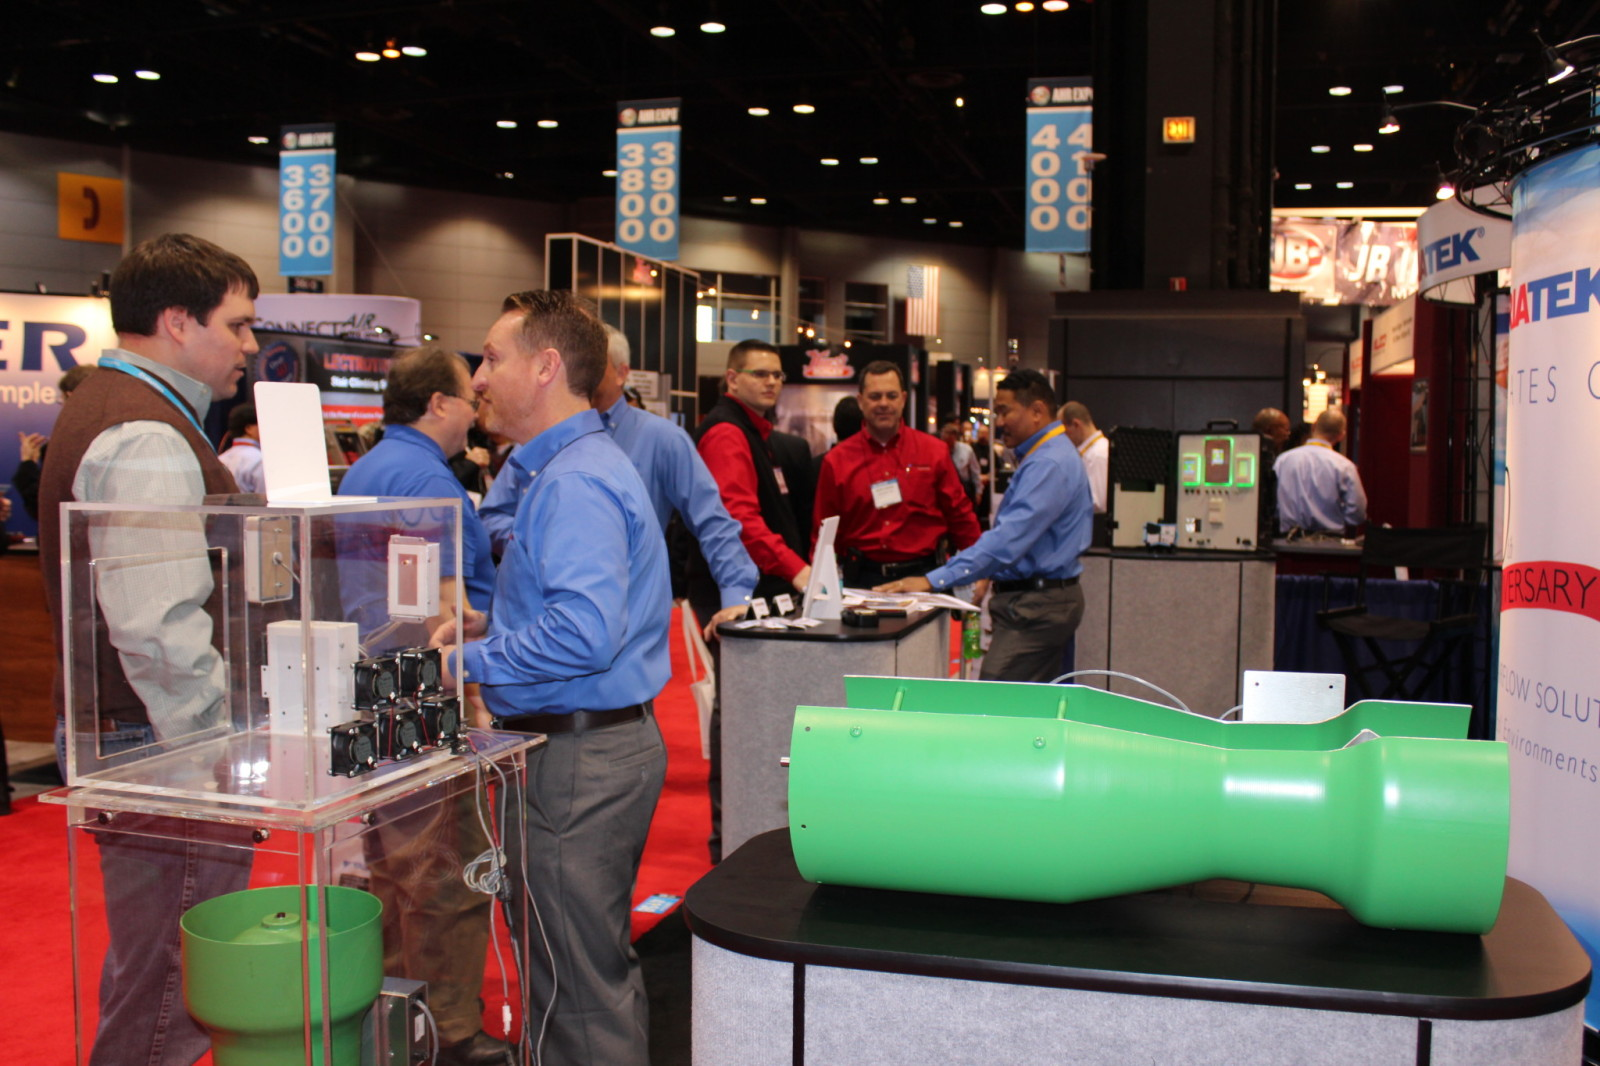 Busy Triatek Booth